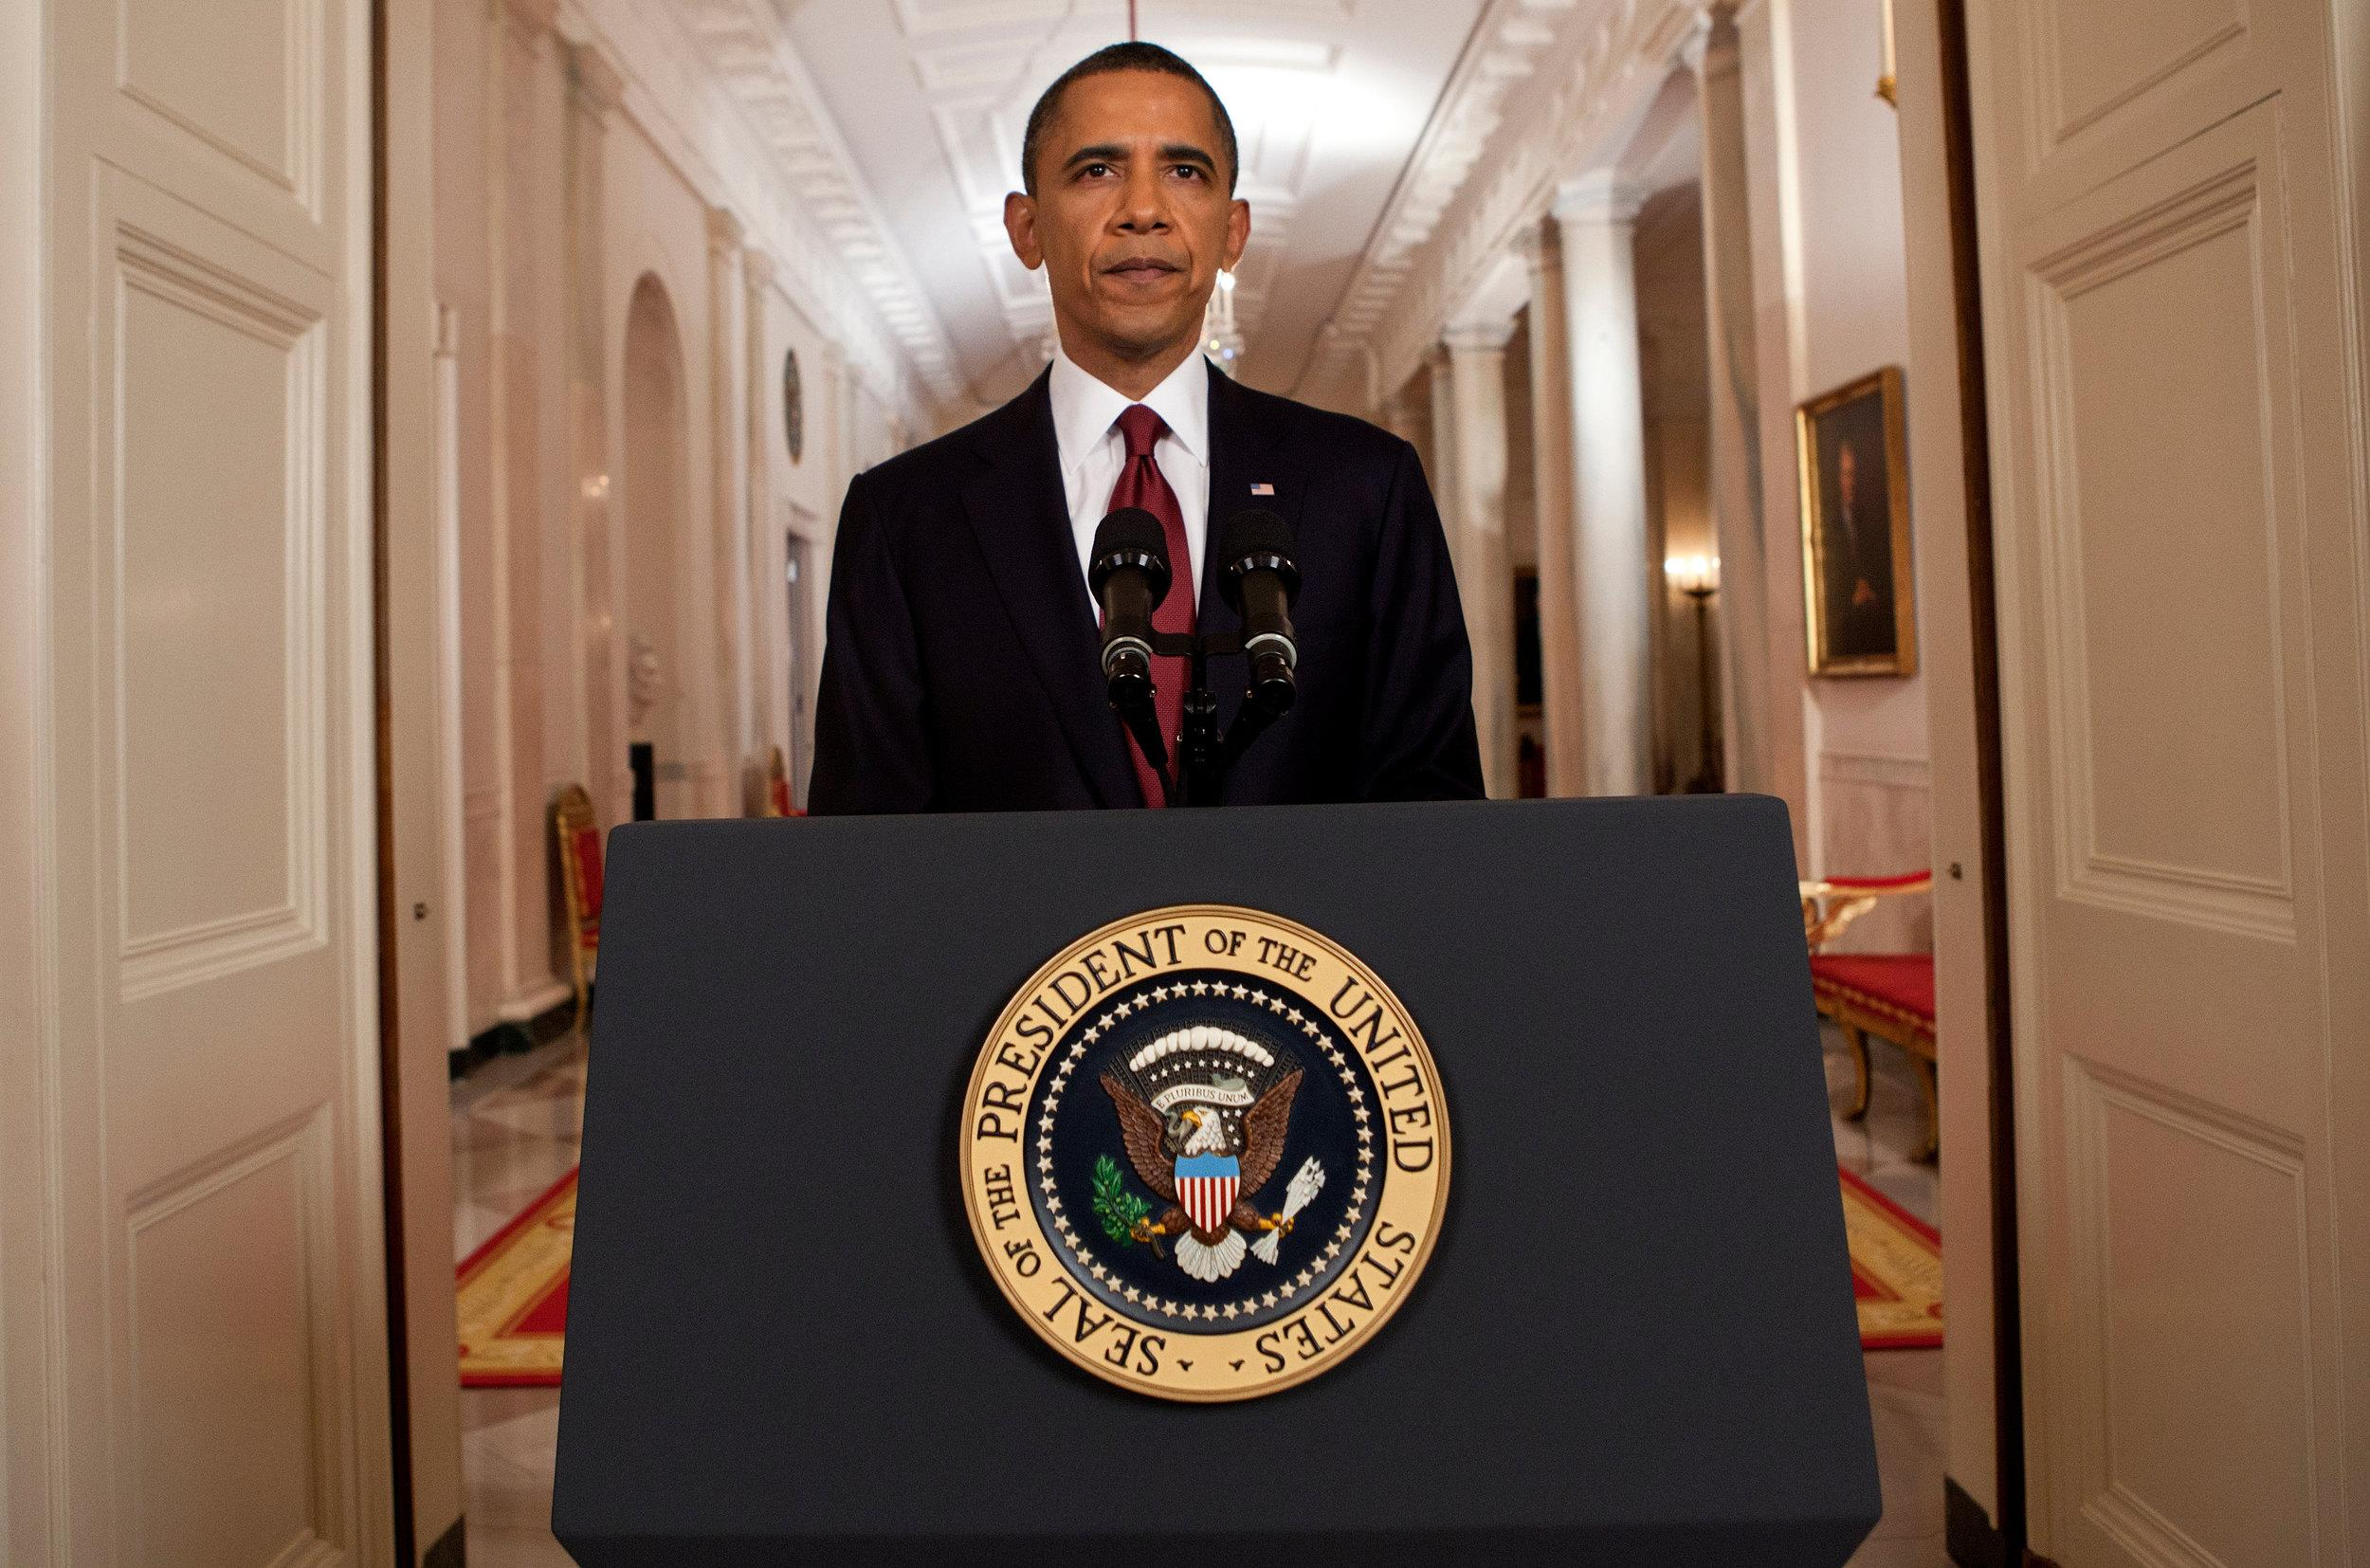 U.S. President Barack Obama stands after addressing the nation on TV from the East Room of the White House to make a televised statement May 1, 2011 in Washington, DC. Bin Laden has been killed near Islamabad, Pakistan almost a decade after the terrorist attacks of Sept. 11, 2001 and his body is in possession of the United States. (Photo by Brendan Smialowski-Pool/Getty Images)